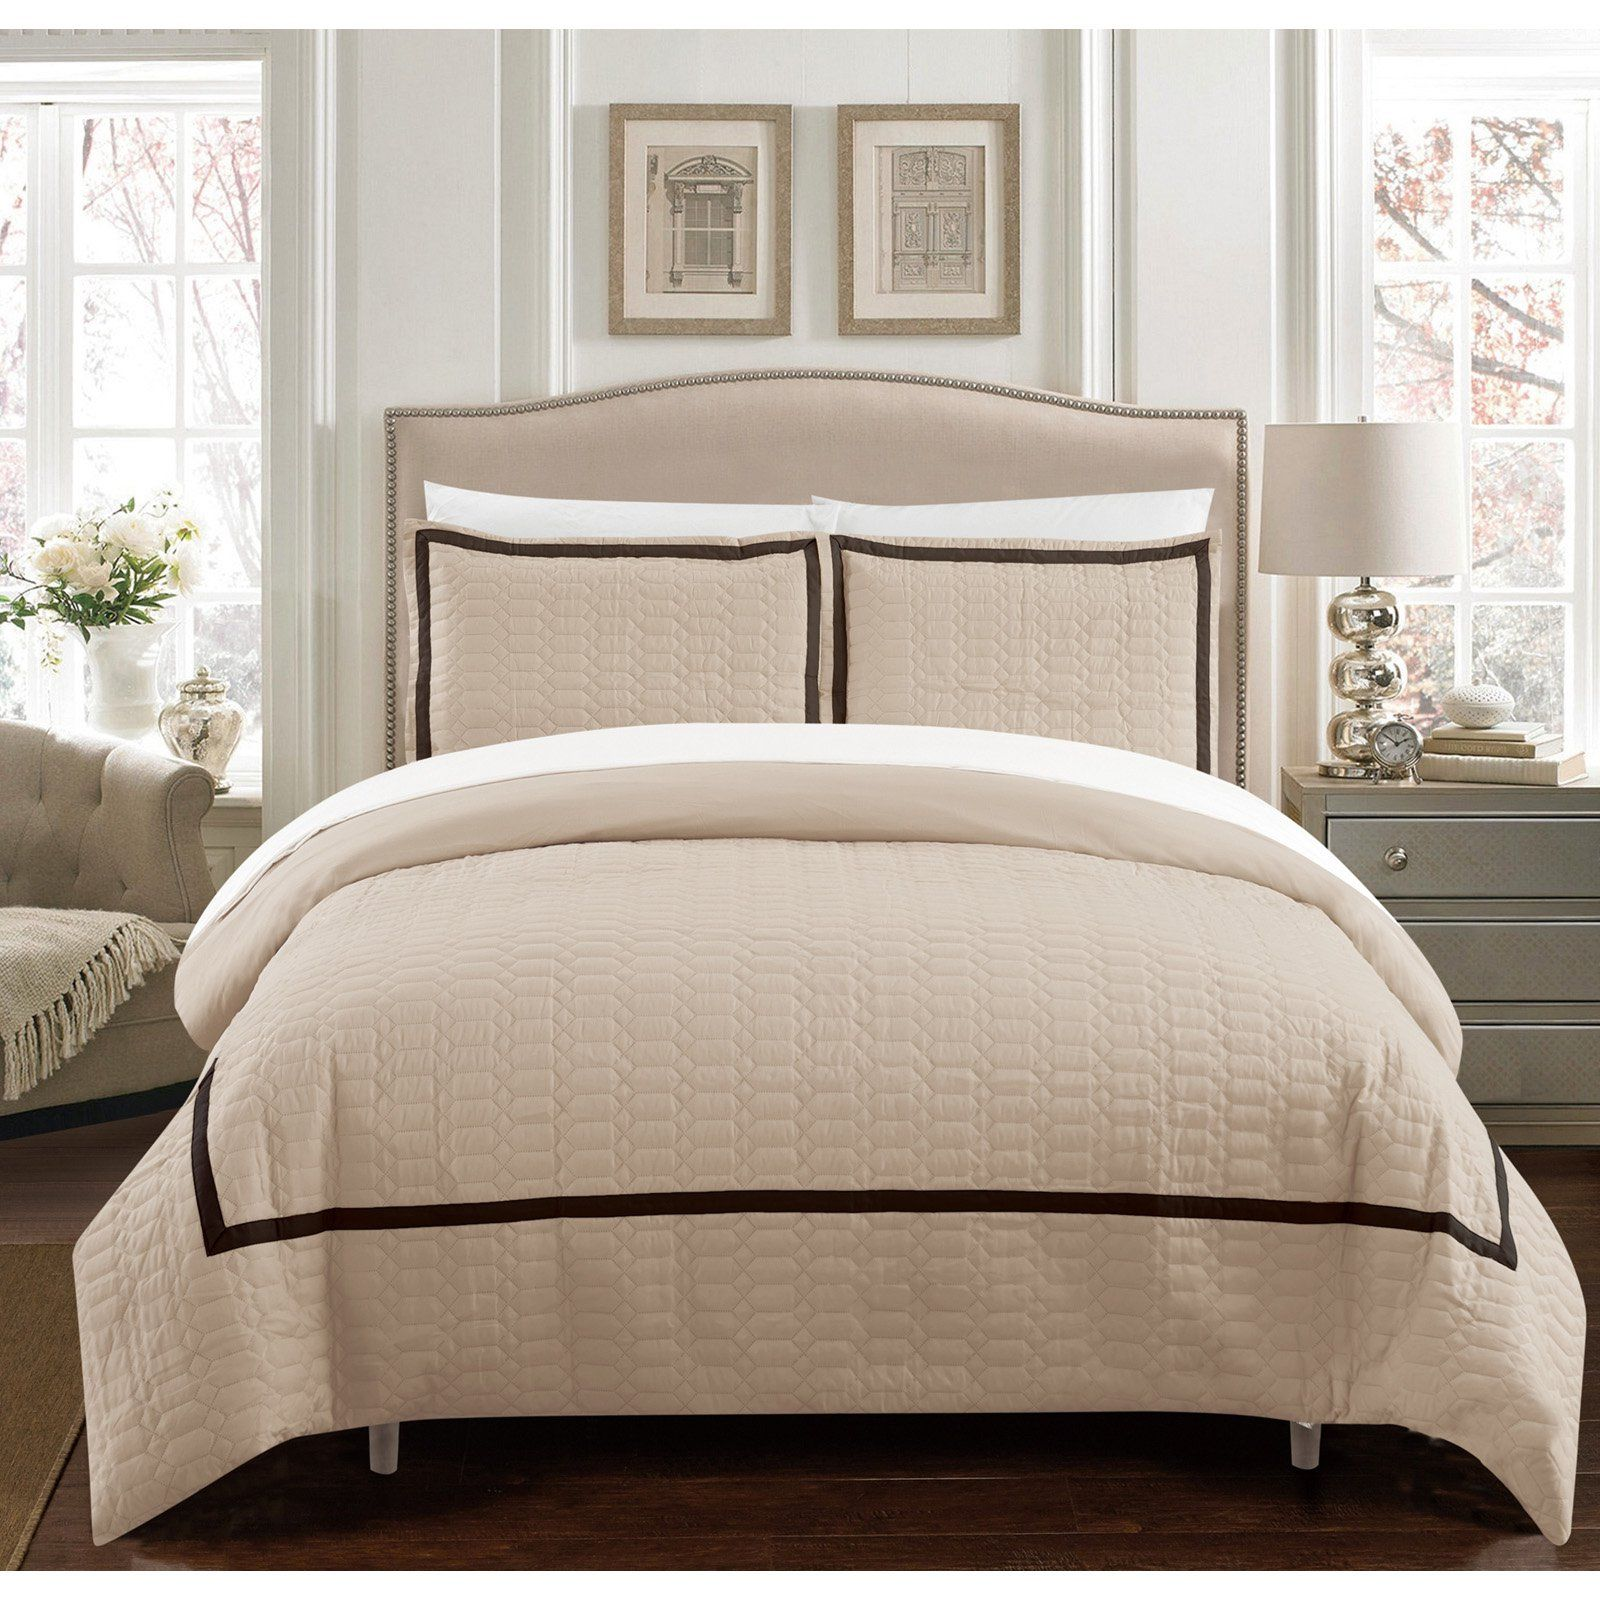 Krystel Duvet Set With Sheets By Chic Home Beige Size Twin Xl